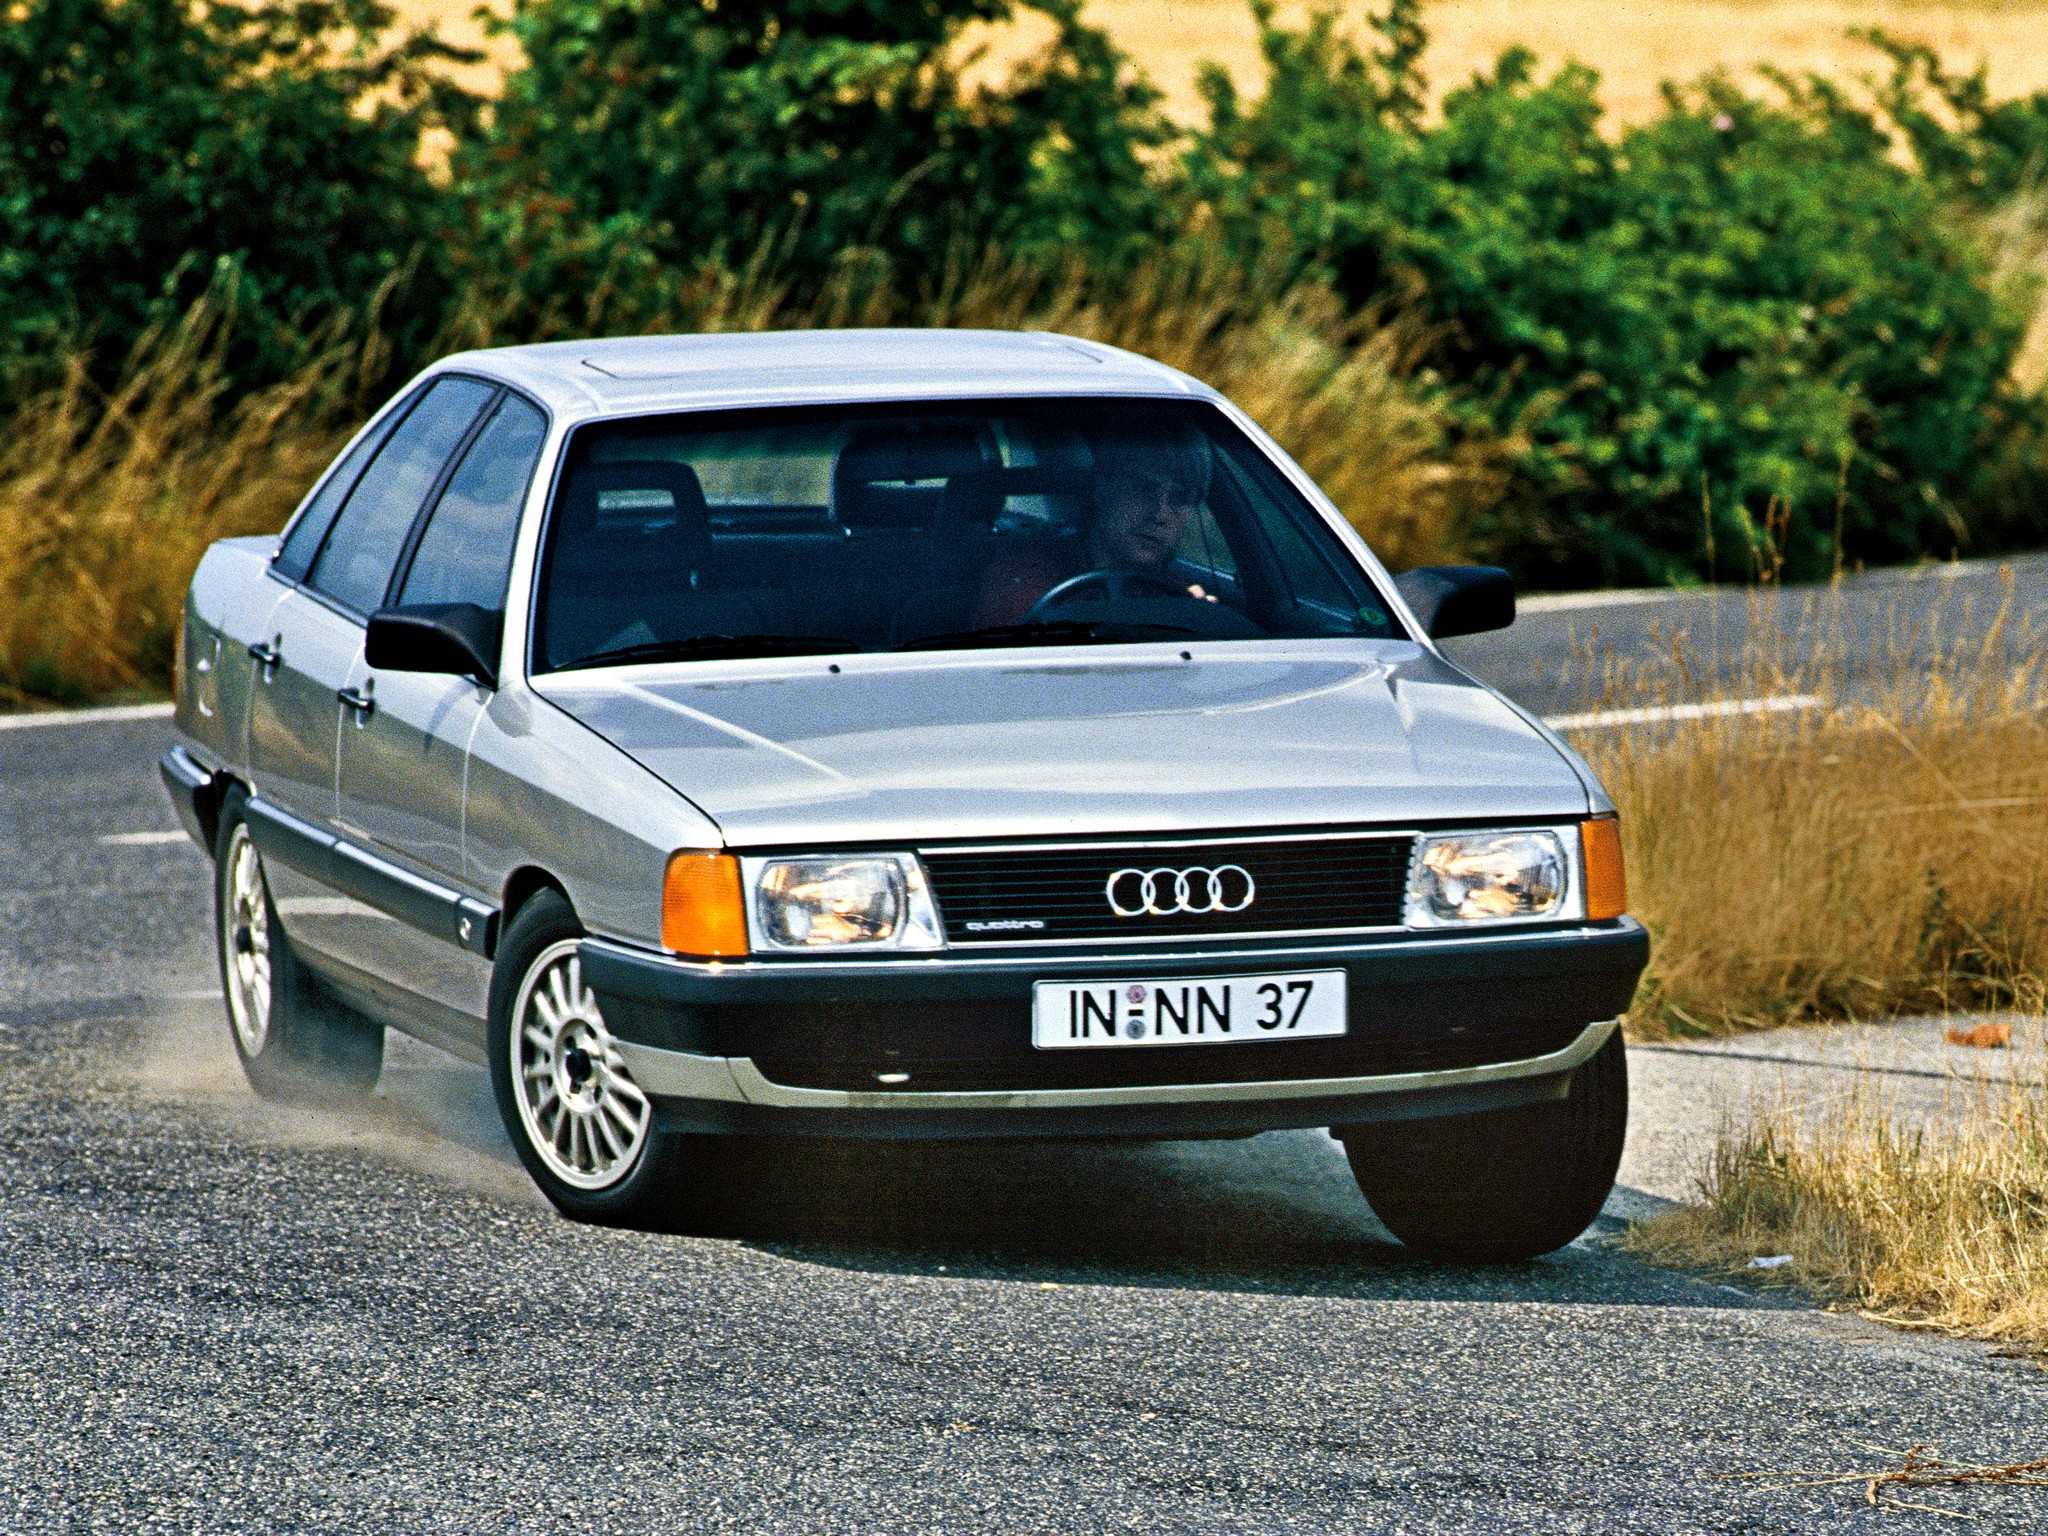 Audi quattro 1985 for sale uk